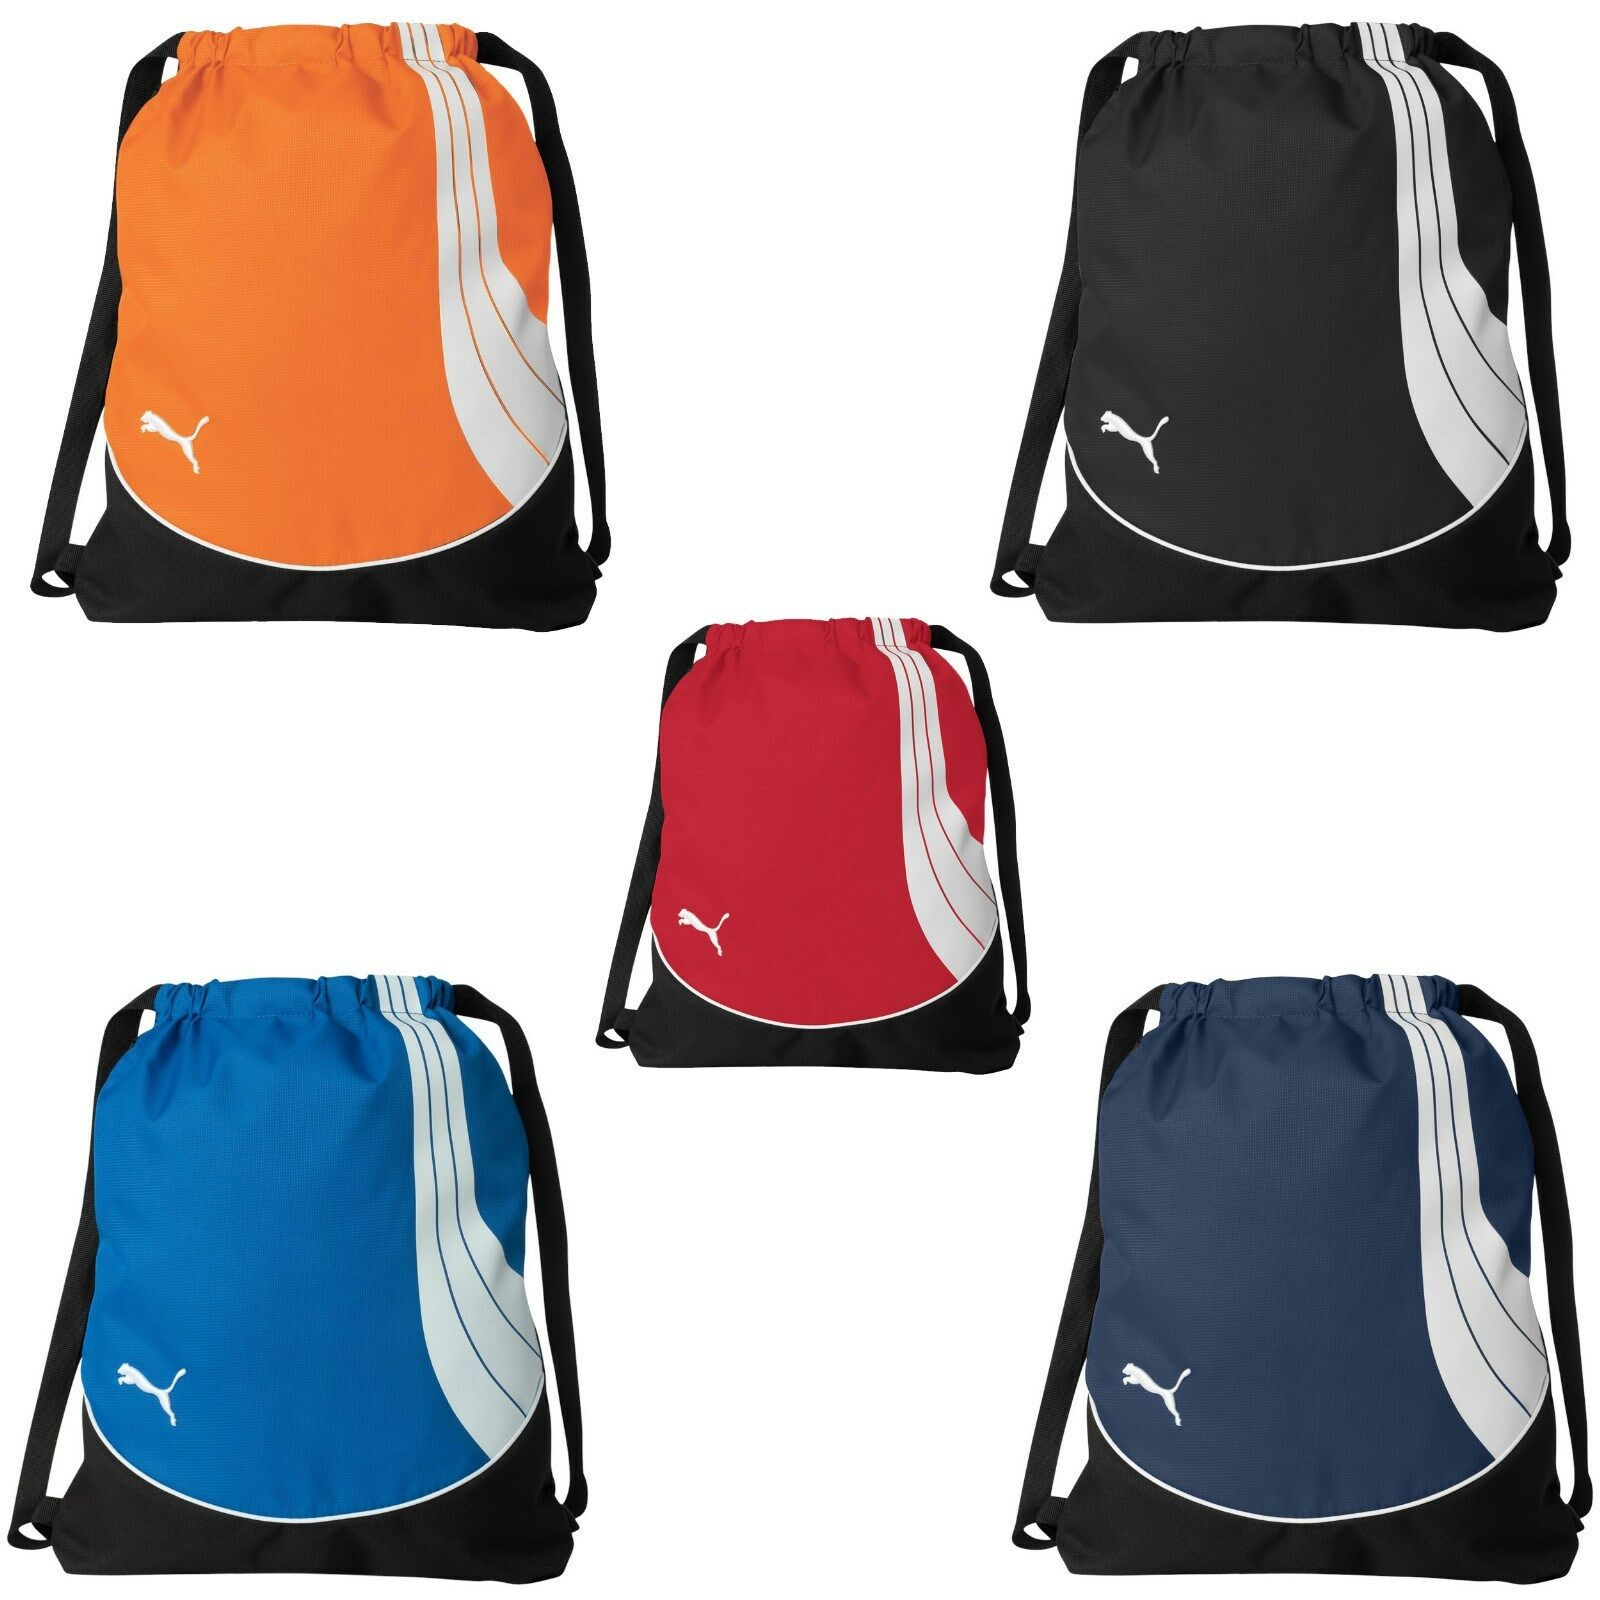 627f2c2572fe Details about PUMA Cat NEW Teamsport Drawstring Backpack Cinch GYM Sack  School Tote Bag PM21